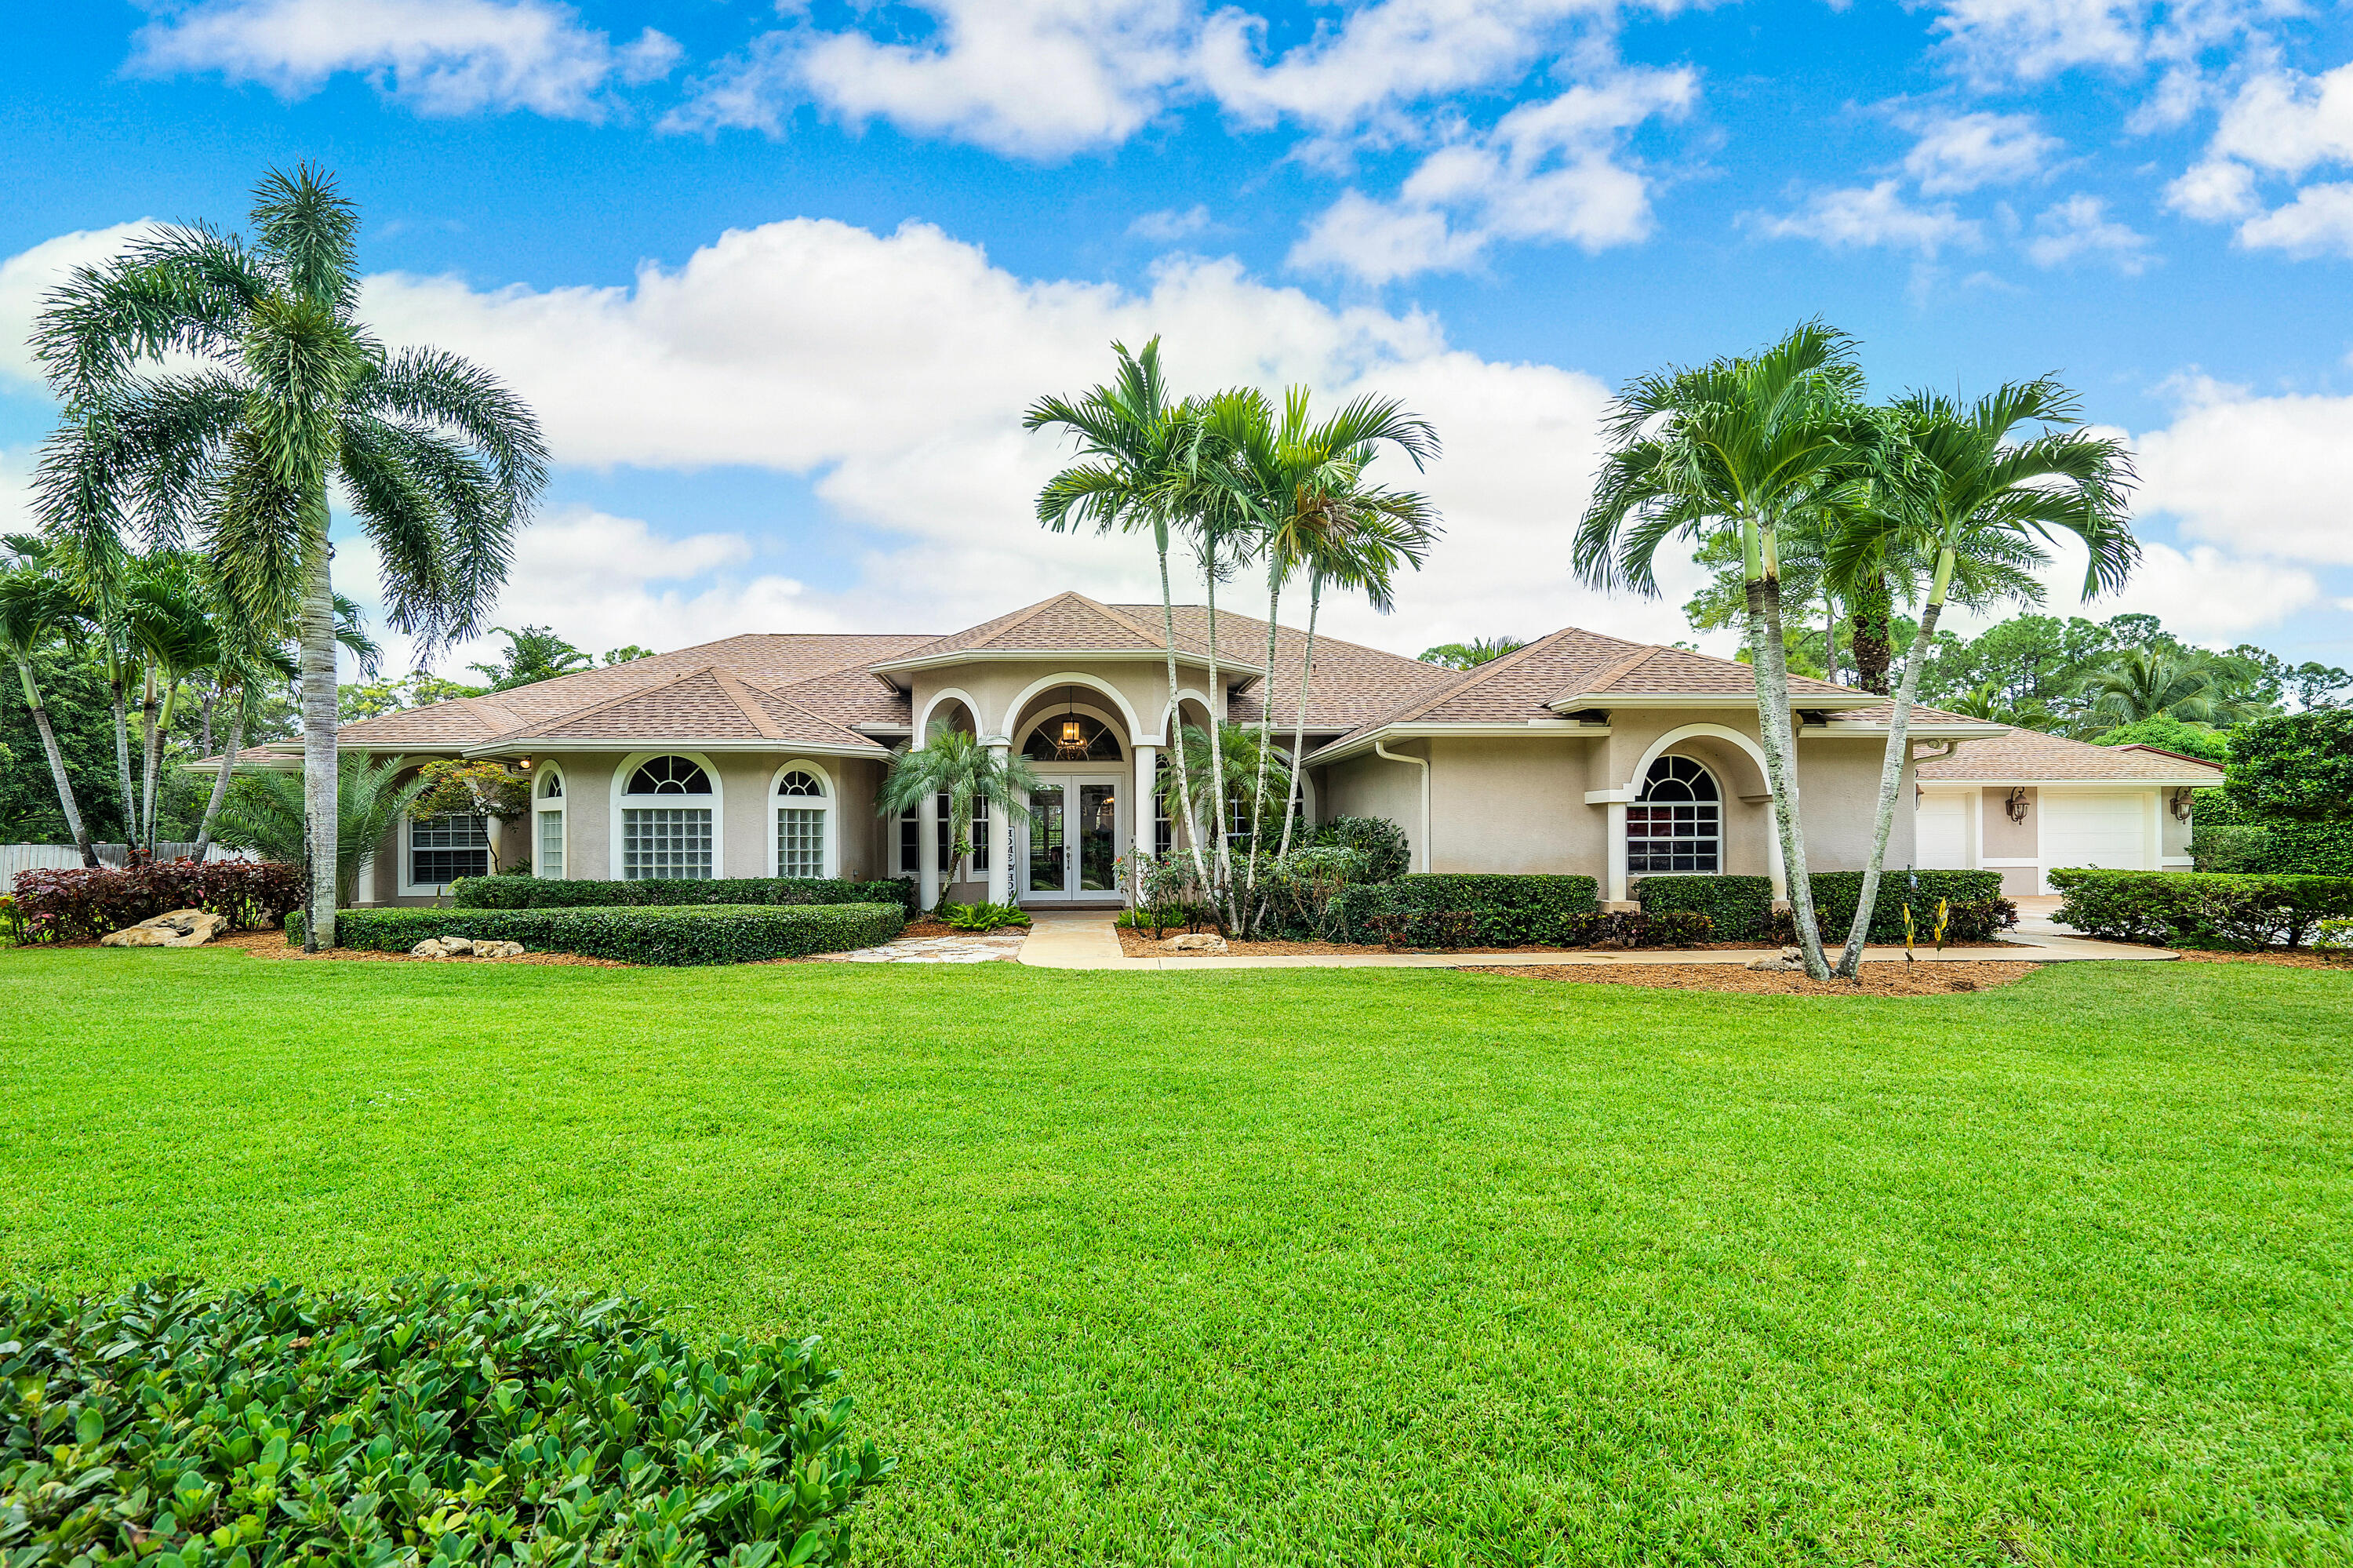 16256  83rd Place  For Sale 10746691, FL